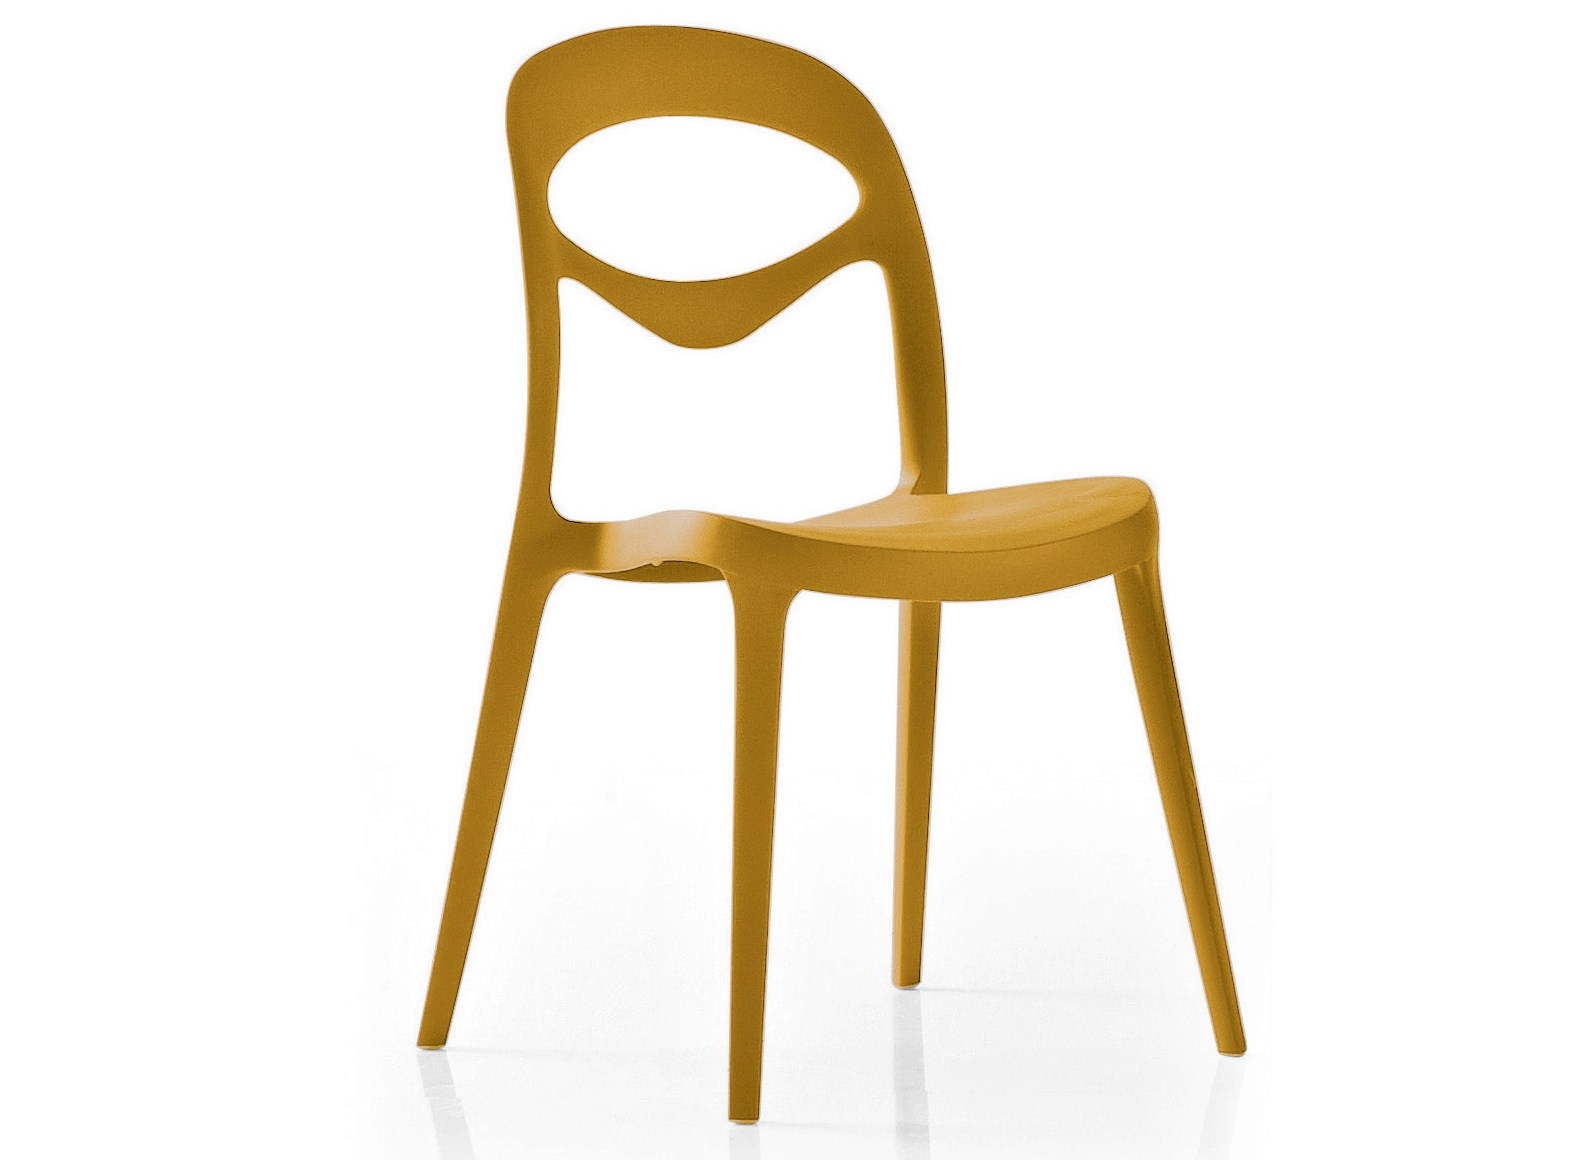 the best 28 images of are chairs for you cing chairs for heavy up to 1000lbs us uk 18 various